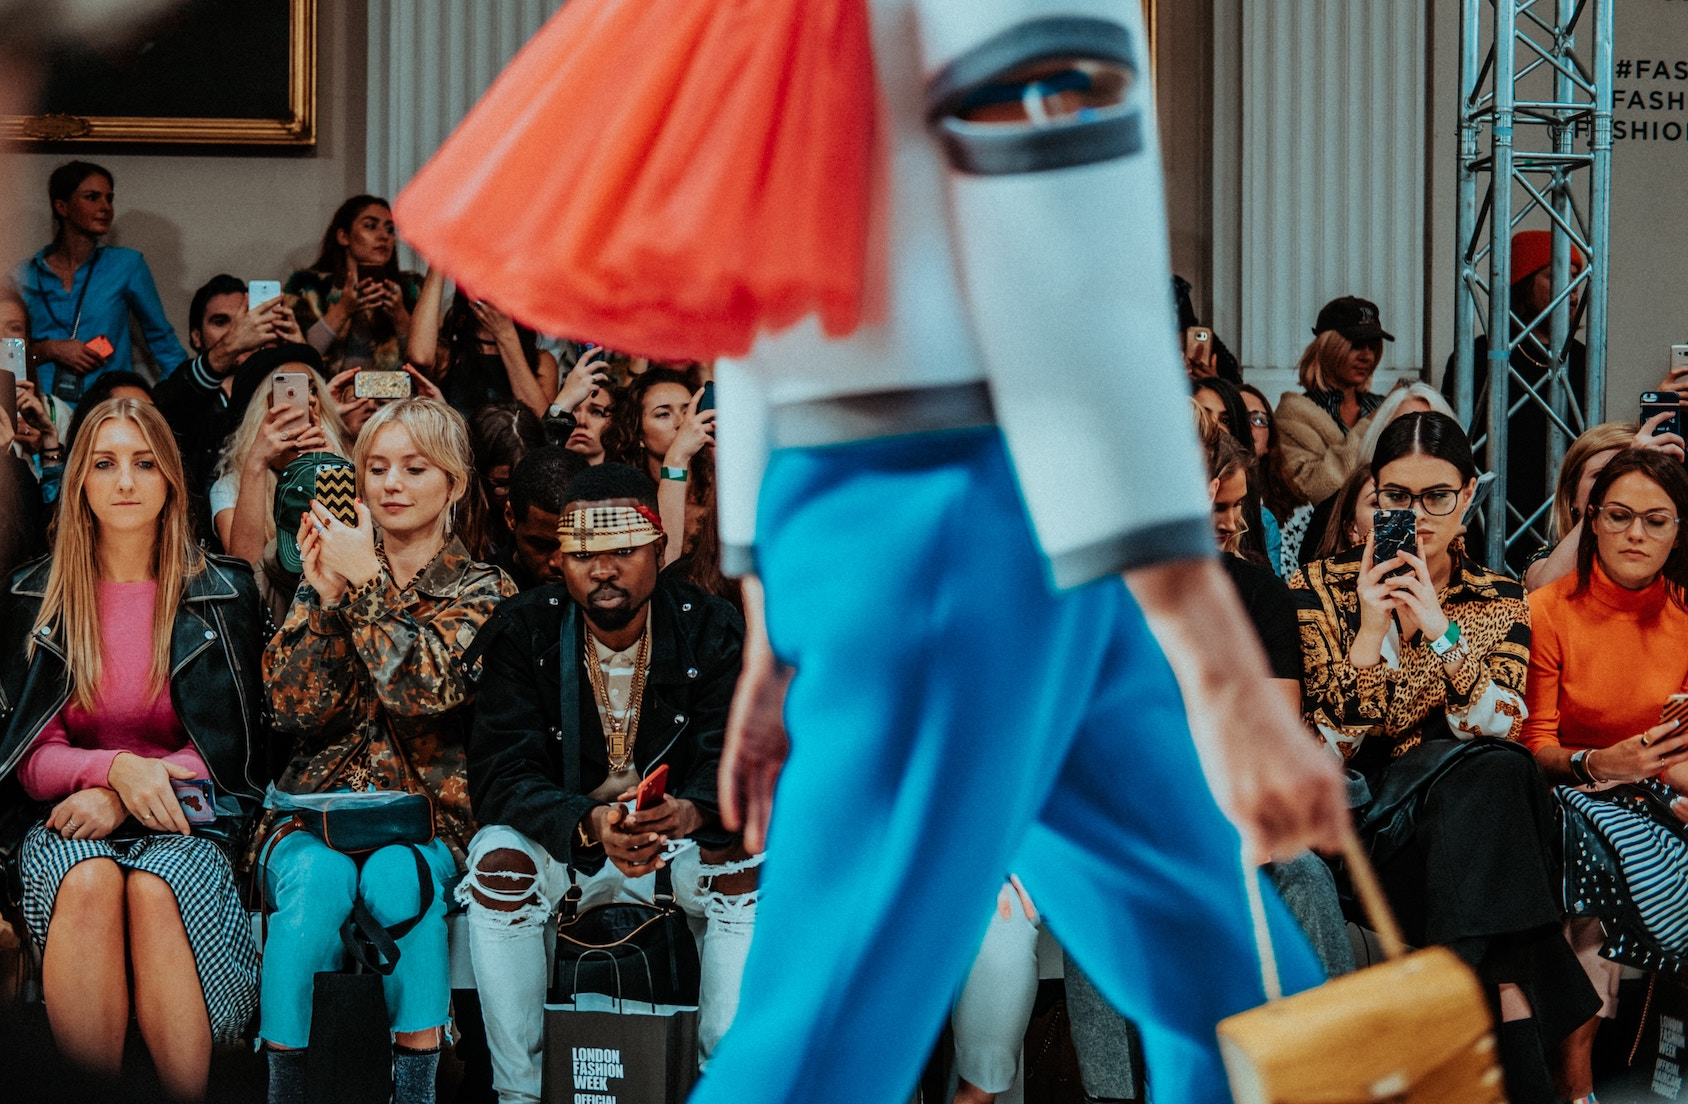 London Fashion Week by London Perfect